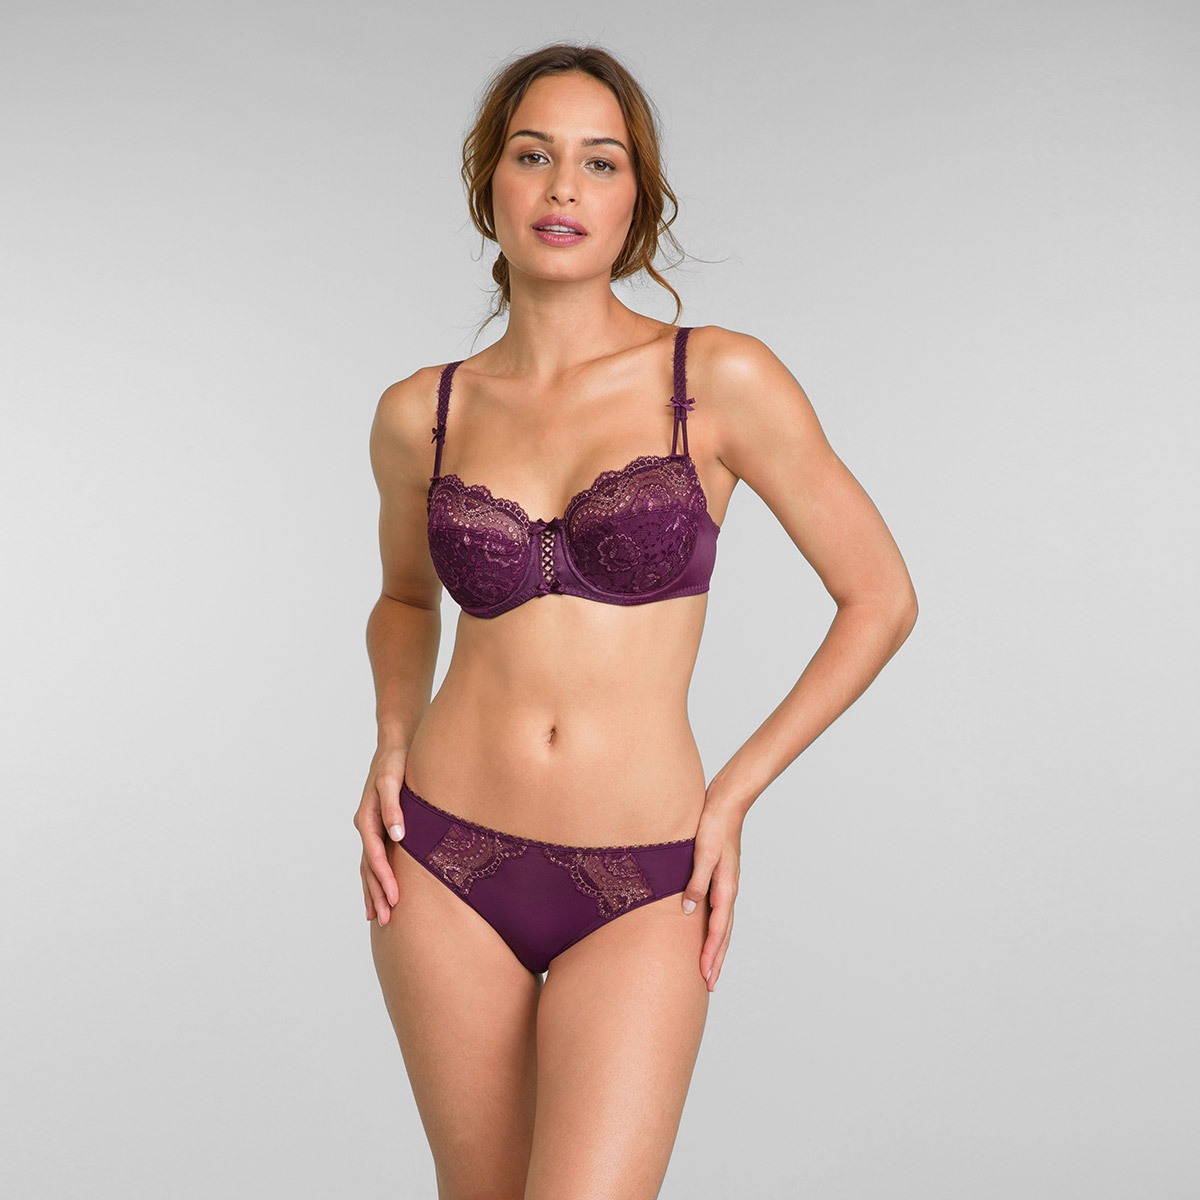 Lace Balcony Bra in Dark Berry Lurex Flower Elegance, , PLAYTEX